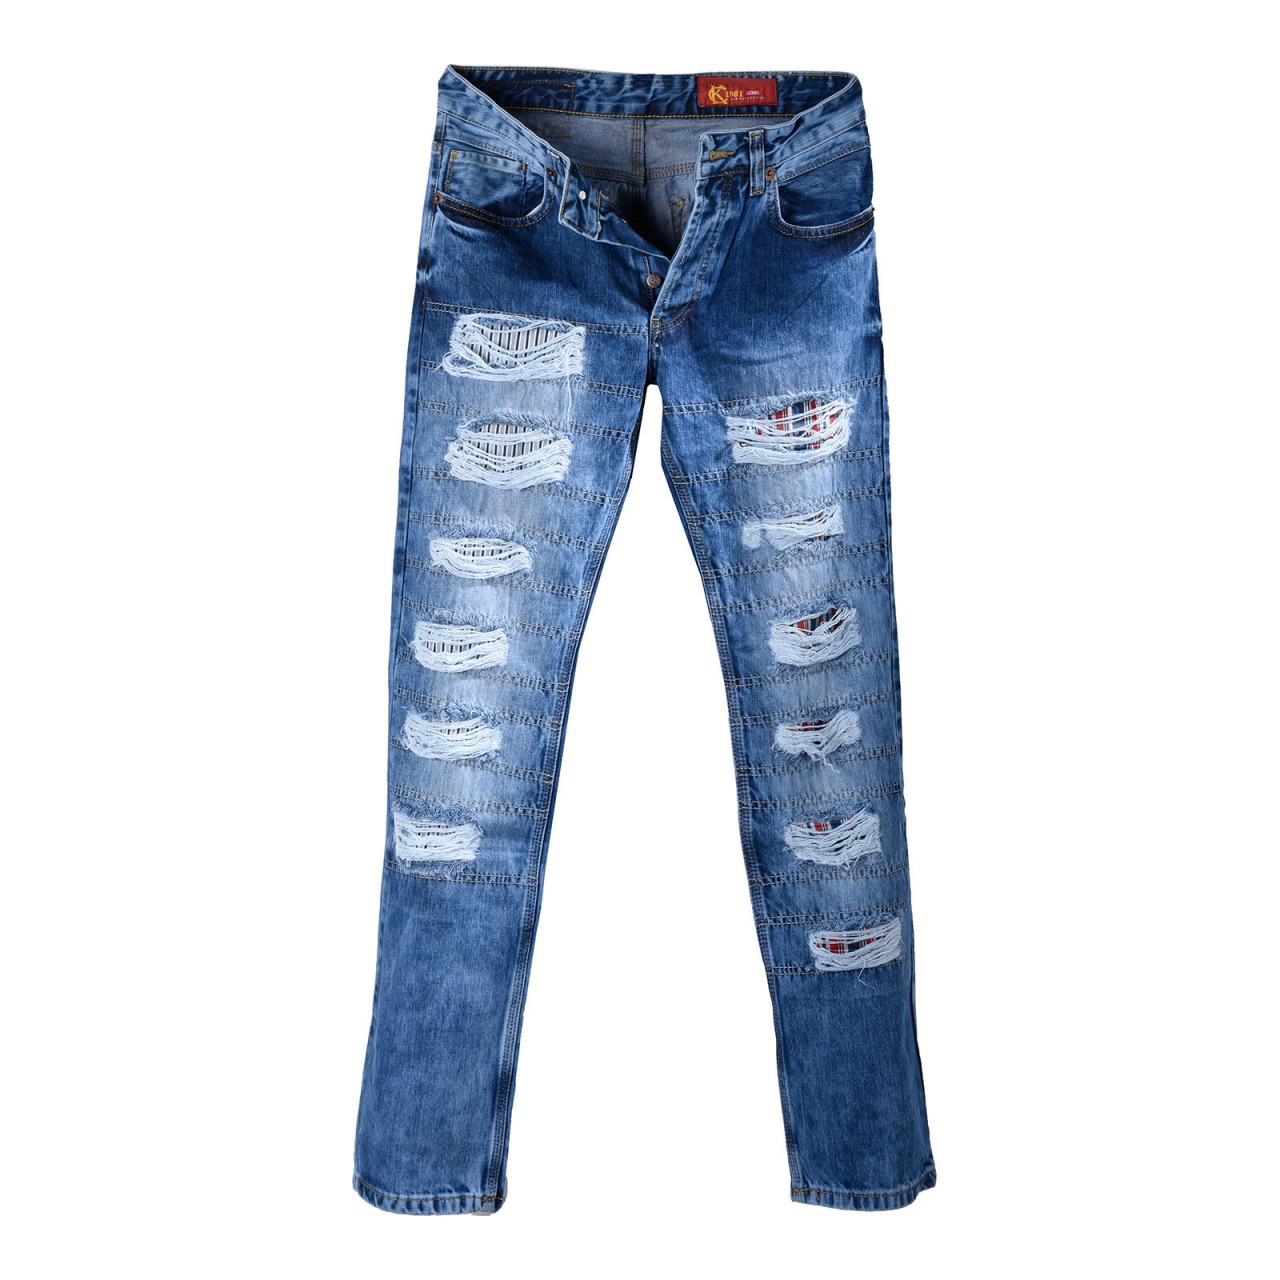 Mens Jeans in Super Used Look